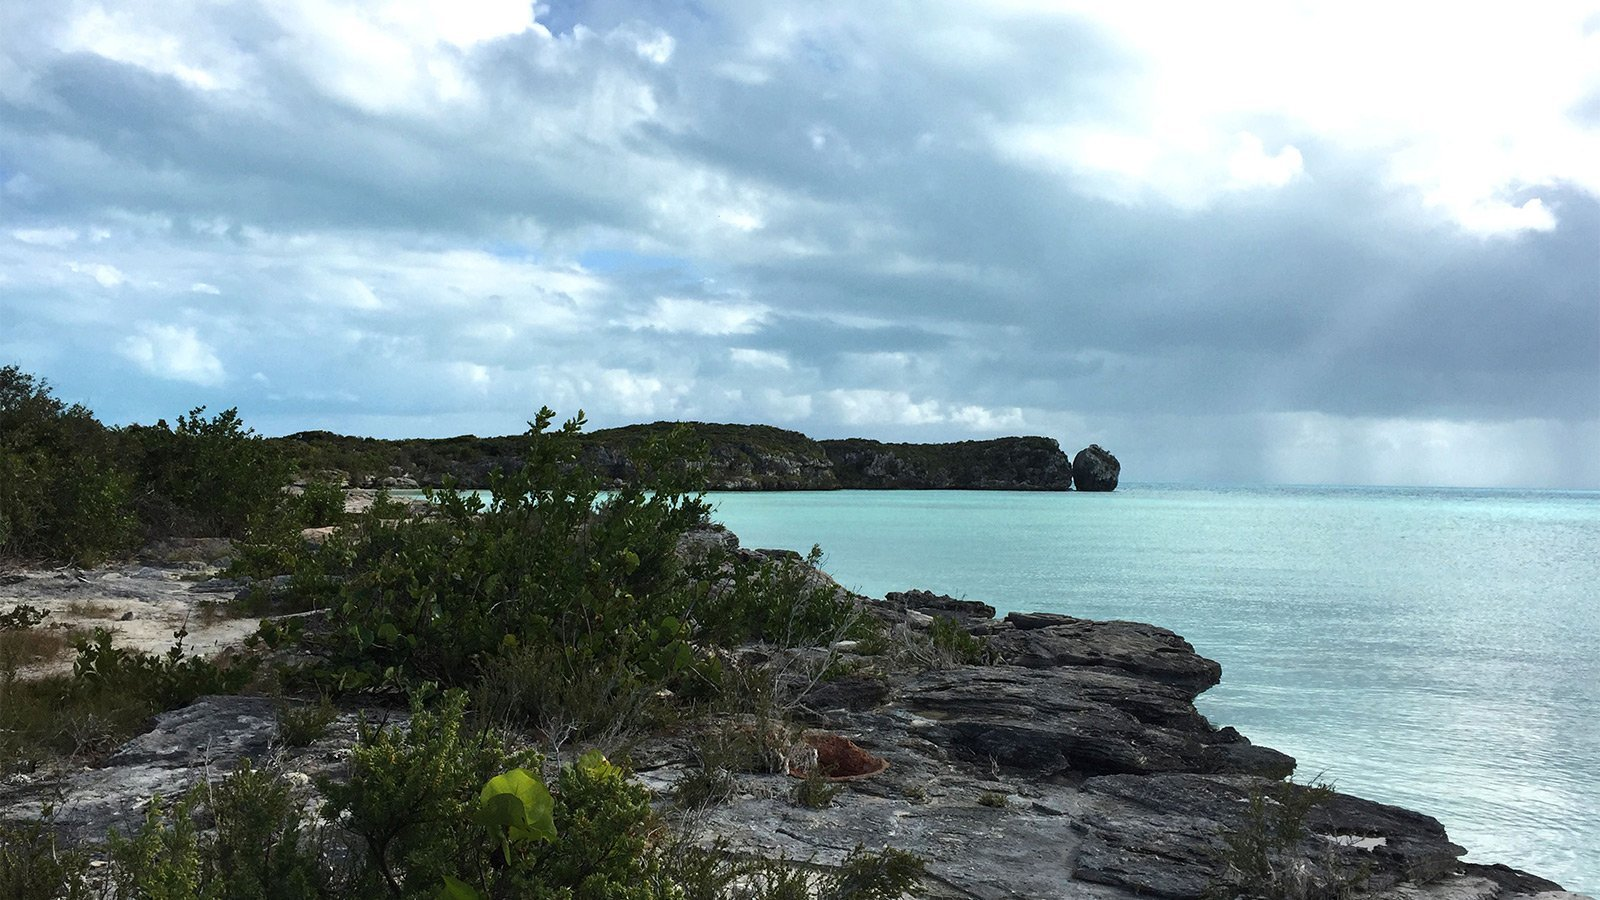 Authorities in the Turks and Caicos said three American tourists drowned in the waters off a scenic beach in August 2019. (Credit: CNN)